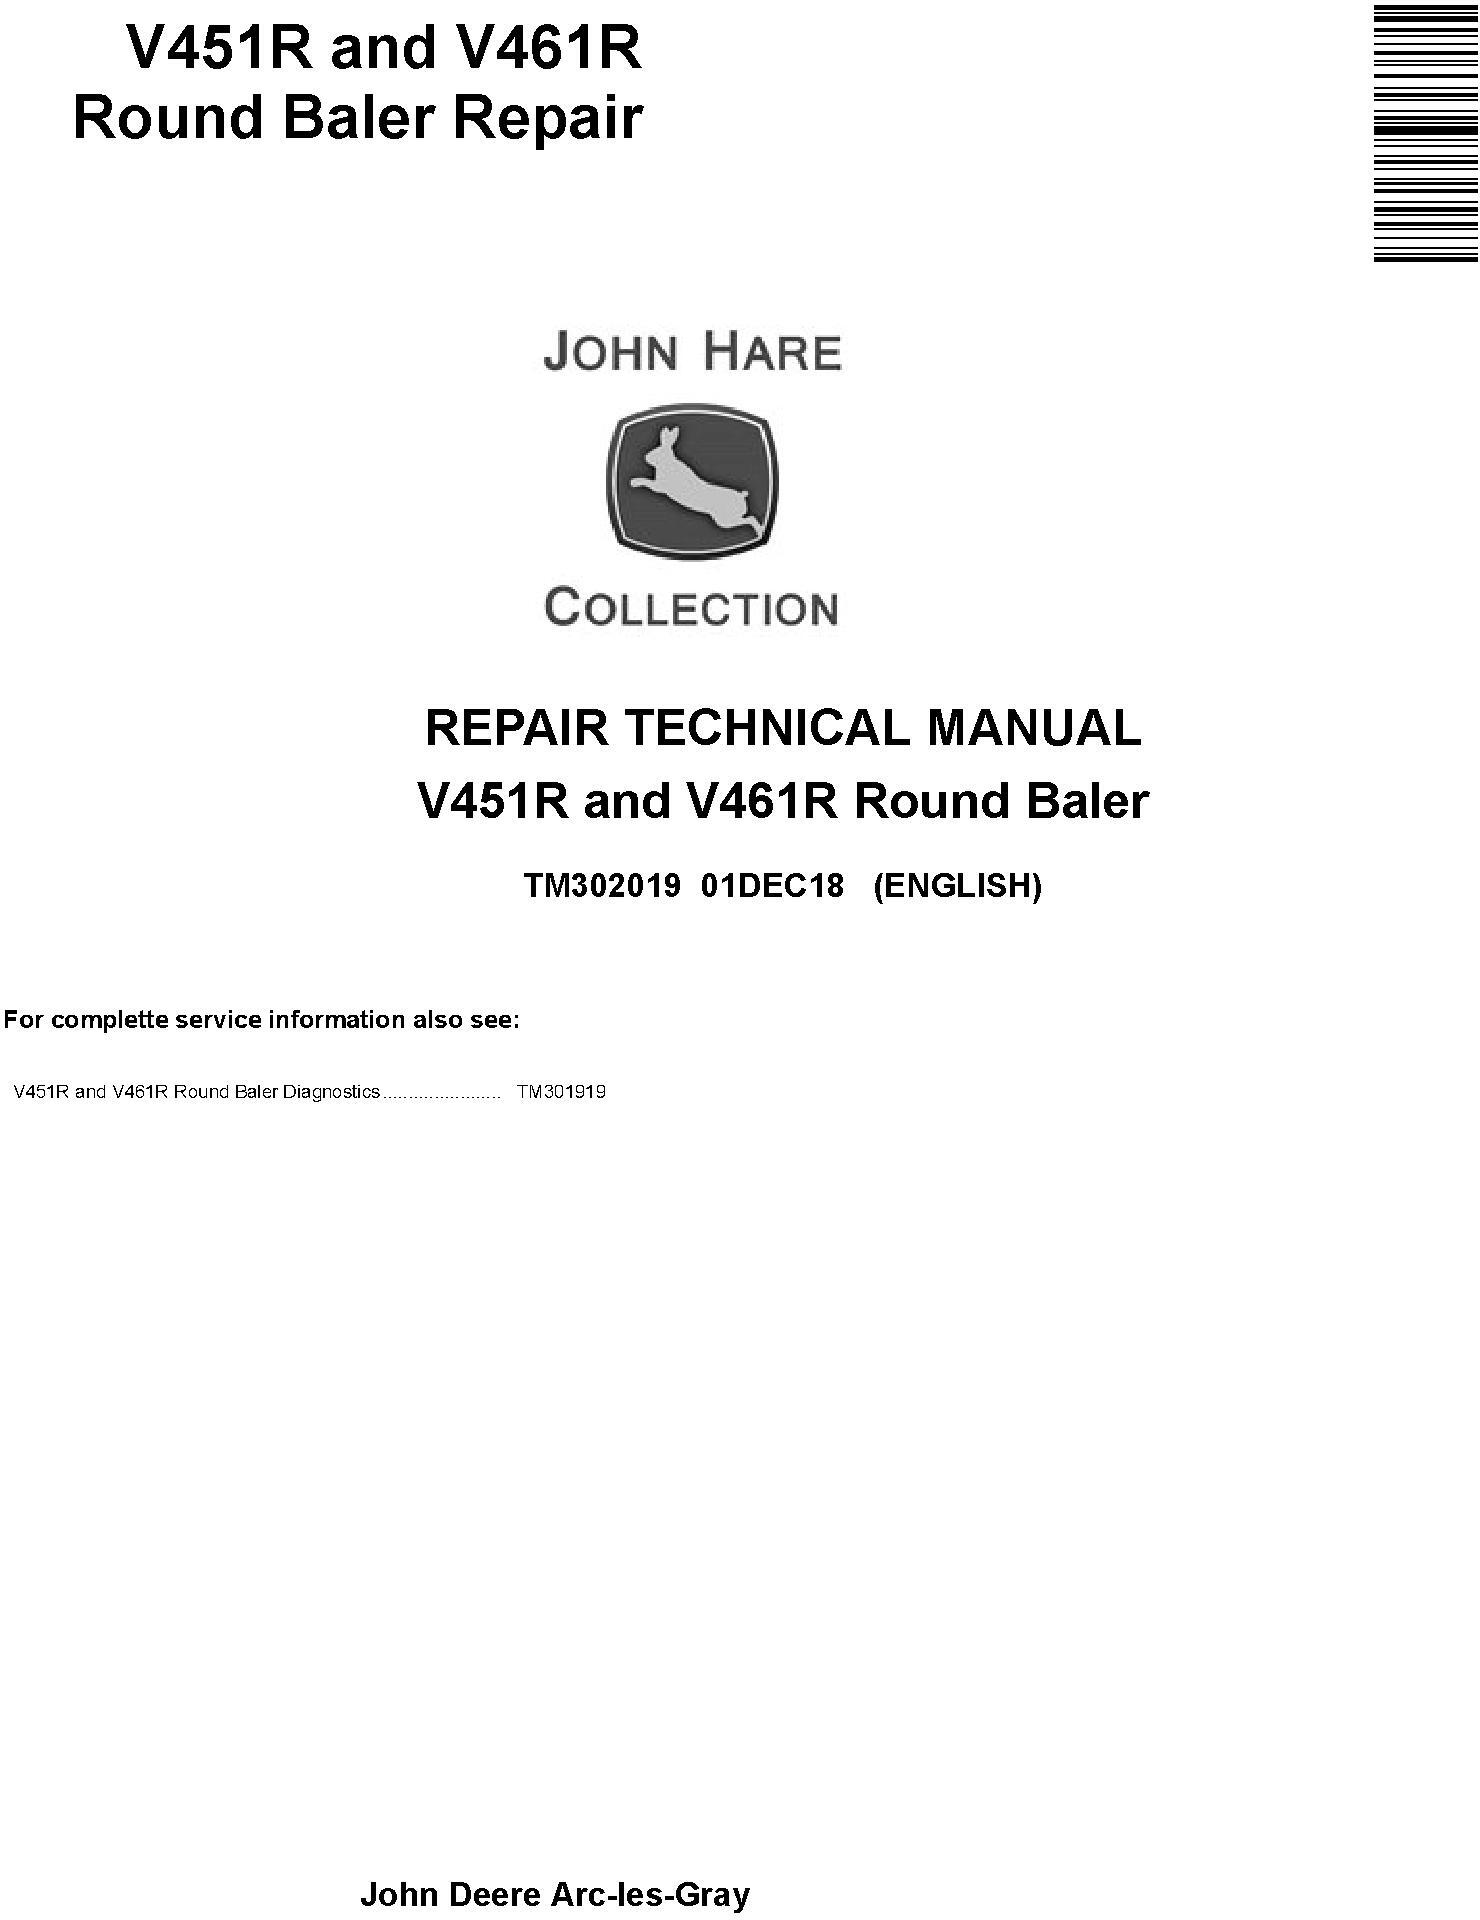 John Deere V451R and V461R Round Baler Service Repair Technical Manual (TM302019) - 19255